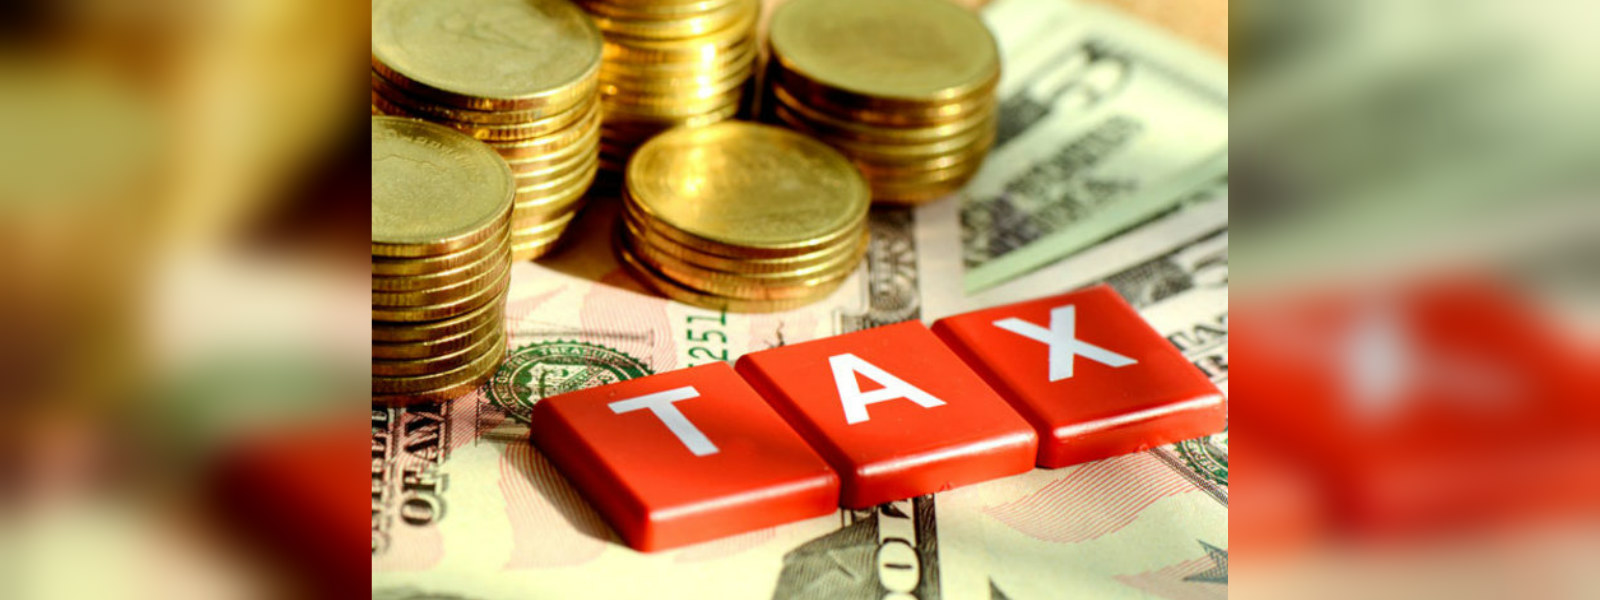 Inland Revenue Department relieves 54,000 businesses from VAT